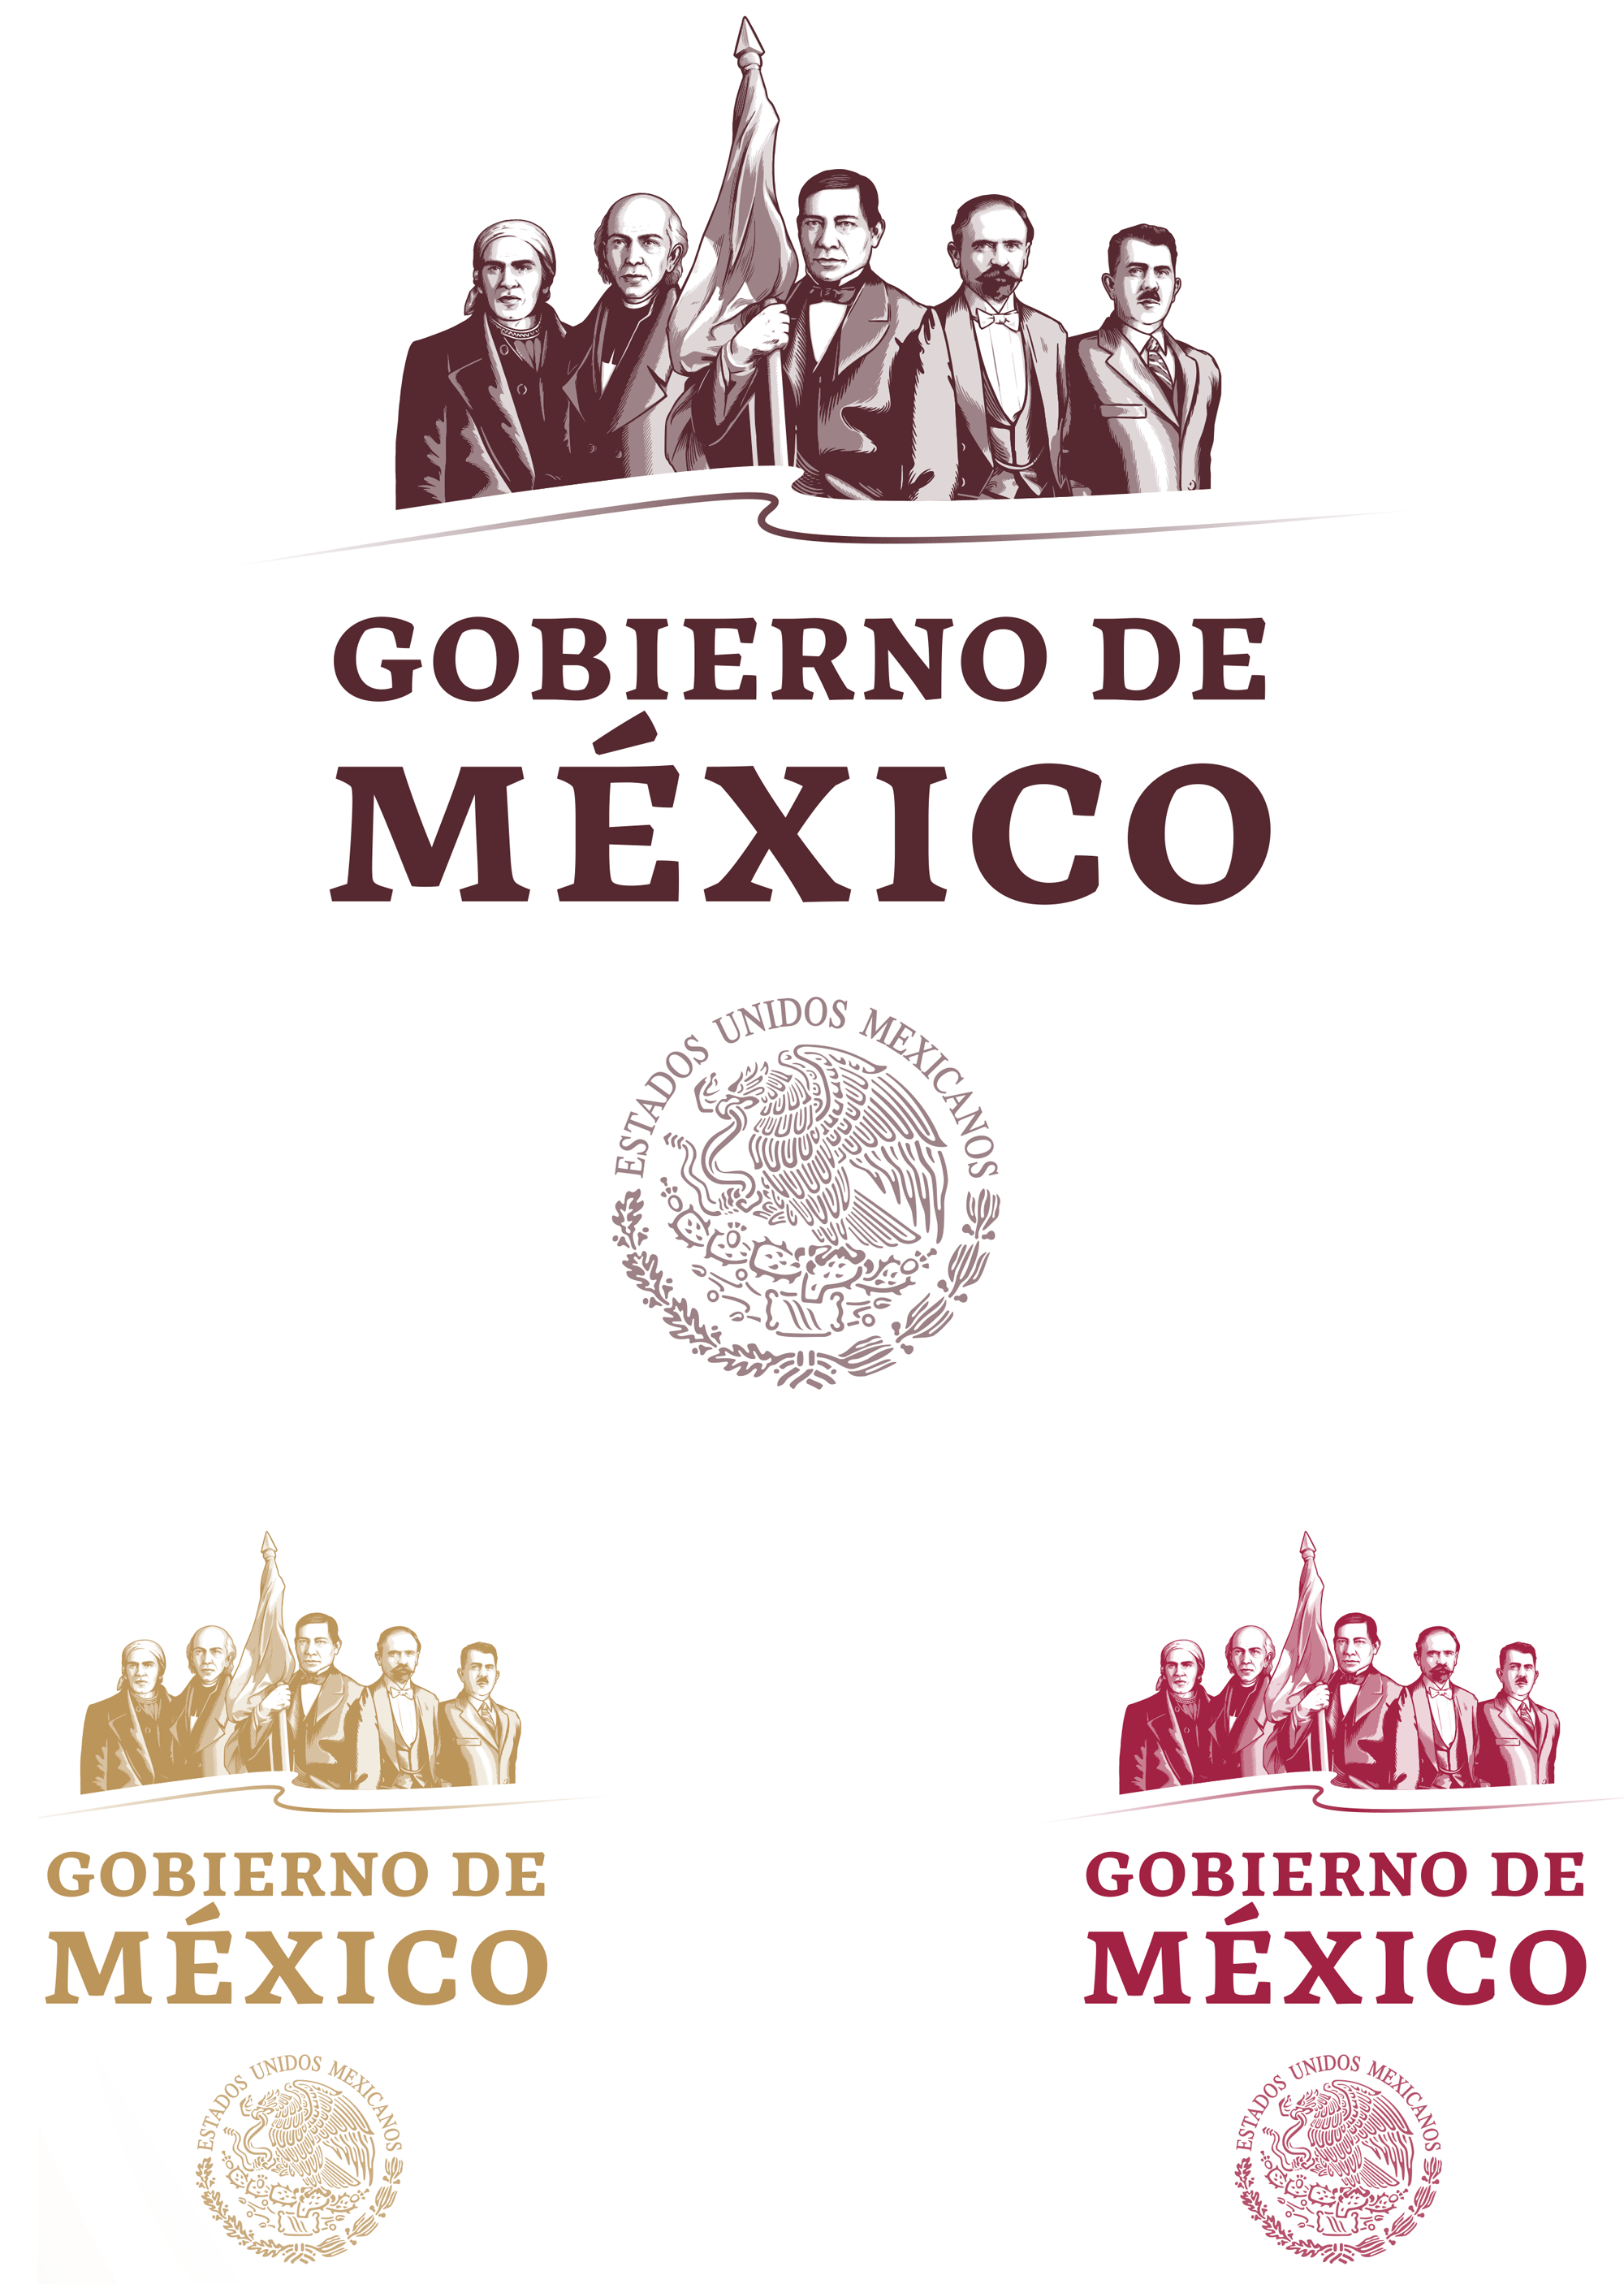 New Logo for Government of Mexico